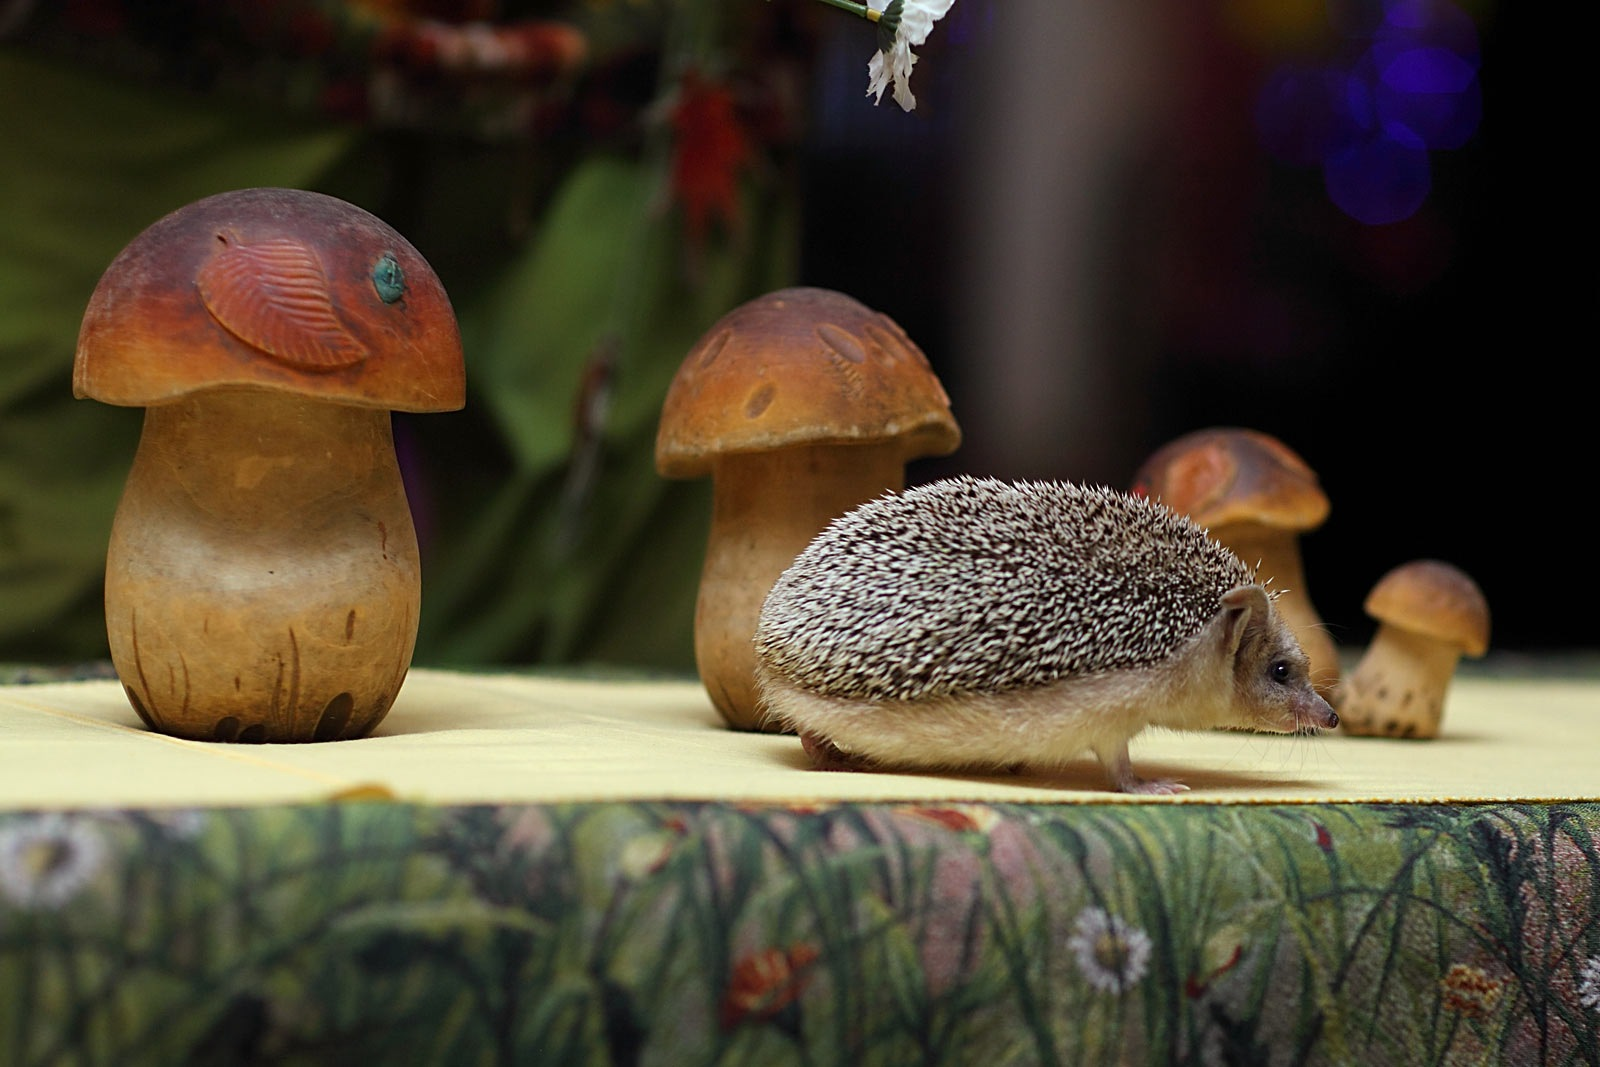 Ежики на дне рождения: http://www.photo-platov.ru/daby-hedgehogs.html